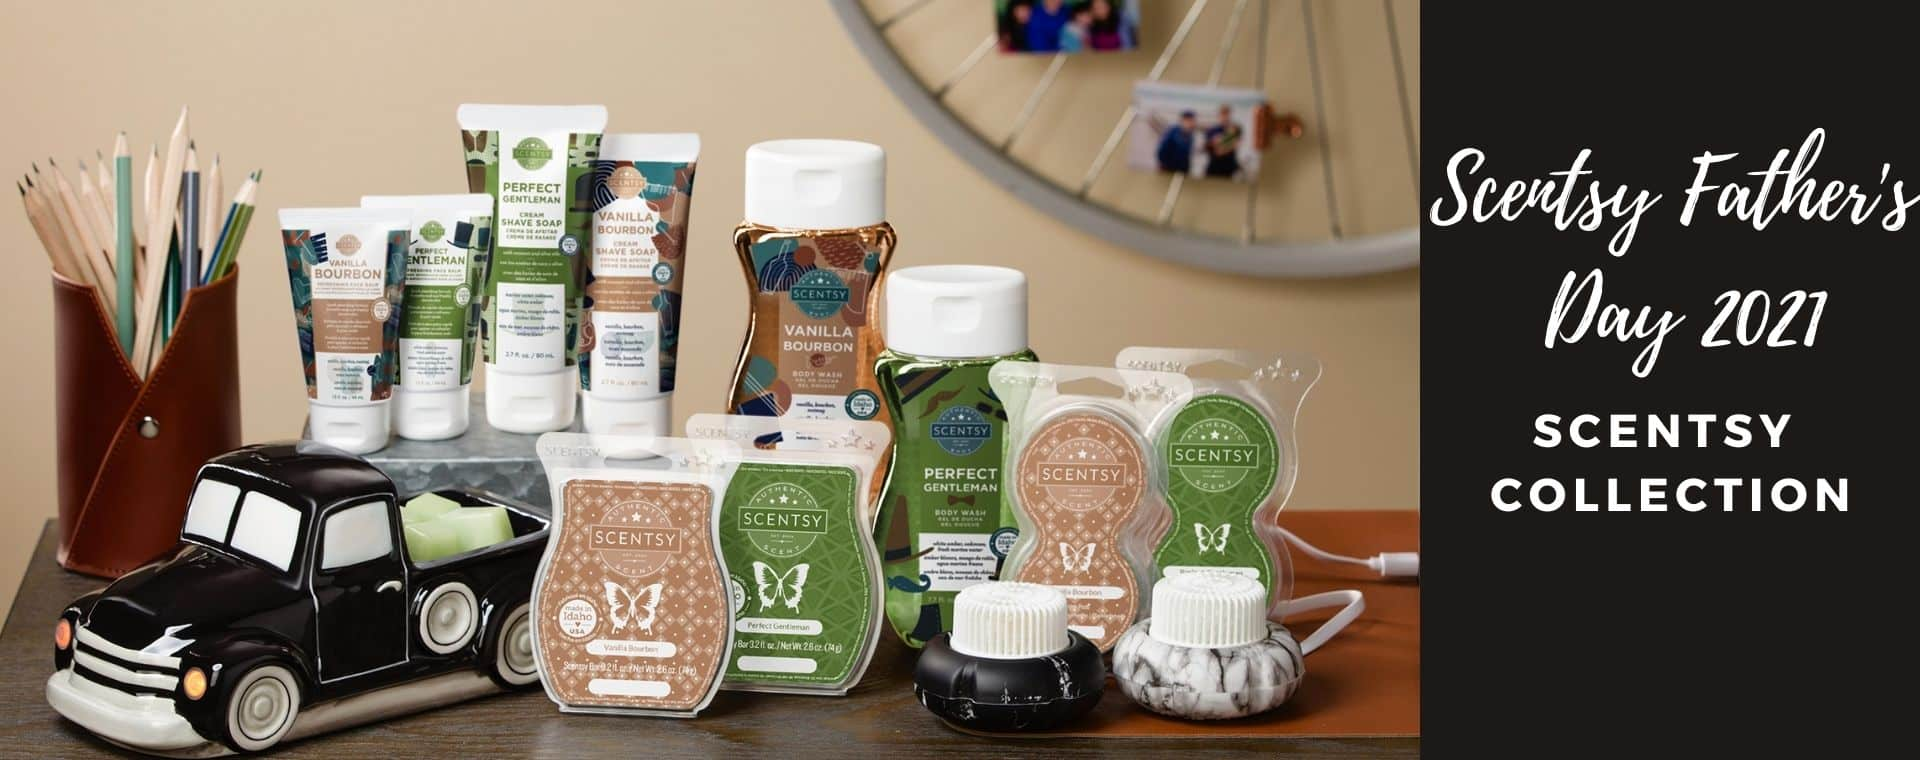 SCENTSY FATHER'S DAY 2021 COLLECTION